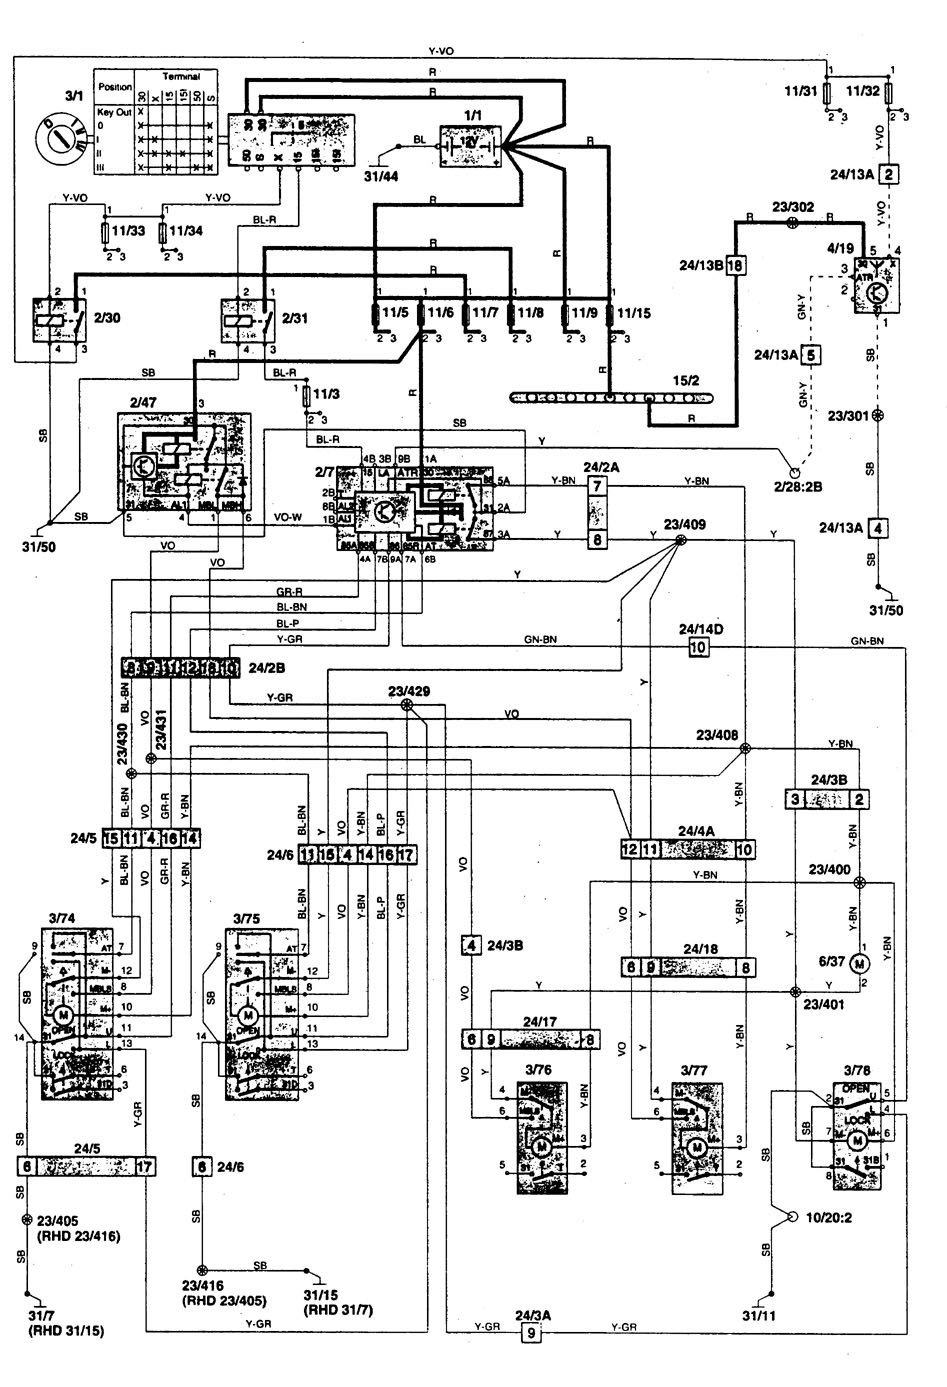 Volvo 850 Wiring Diagram | Wiring Diagram on volvo amazon wiring diagram, pontiac trans sport wiring diagram, dodge omni wiring diagram, chevrolet hhr wiring diagram, saturn aura wiring diagram, bmw e90 wiring diagram, chevrolet volt wiring diagram, mercedes e320 wiring diagram, chrysler crossfire wiring diagram, mercury milan wiring diagram, volvo 850 water pump, mitsubishi starion wiring diagram, volvo 850 shop manual, volkswagen cabrio wiring diagram, volvo ignition wiring diagram, geo storm wiring diagram, honda ascot wiring diagram, volvo 850 suspension, volkswagen golf wiring diagram, porsche cayenne wiring diagram,